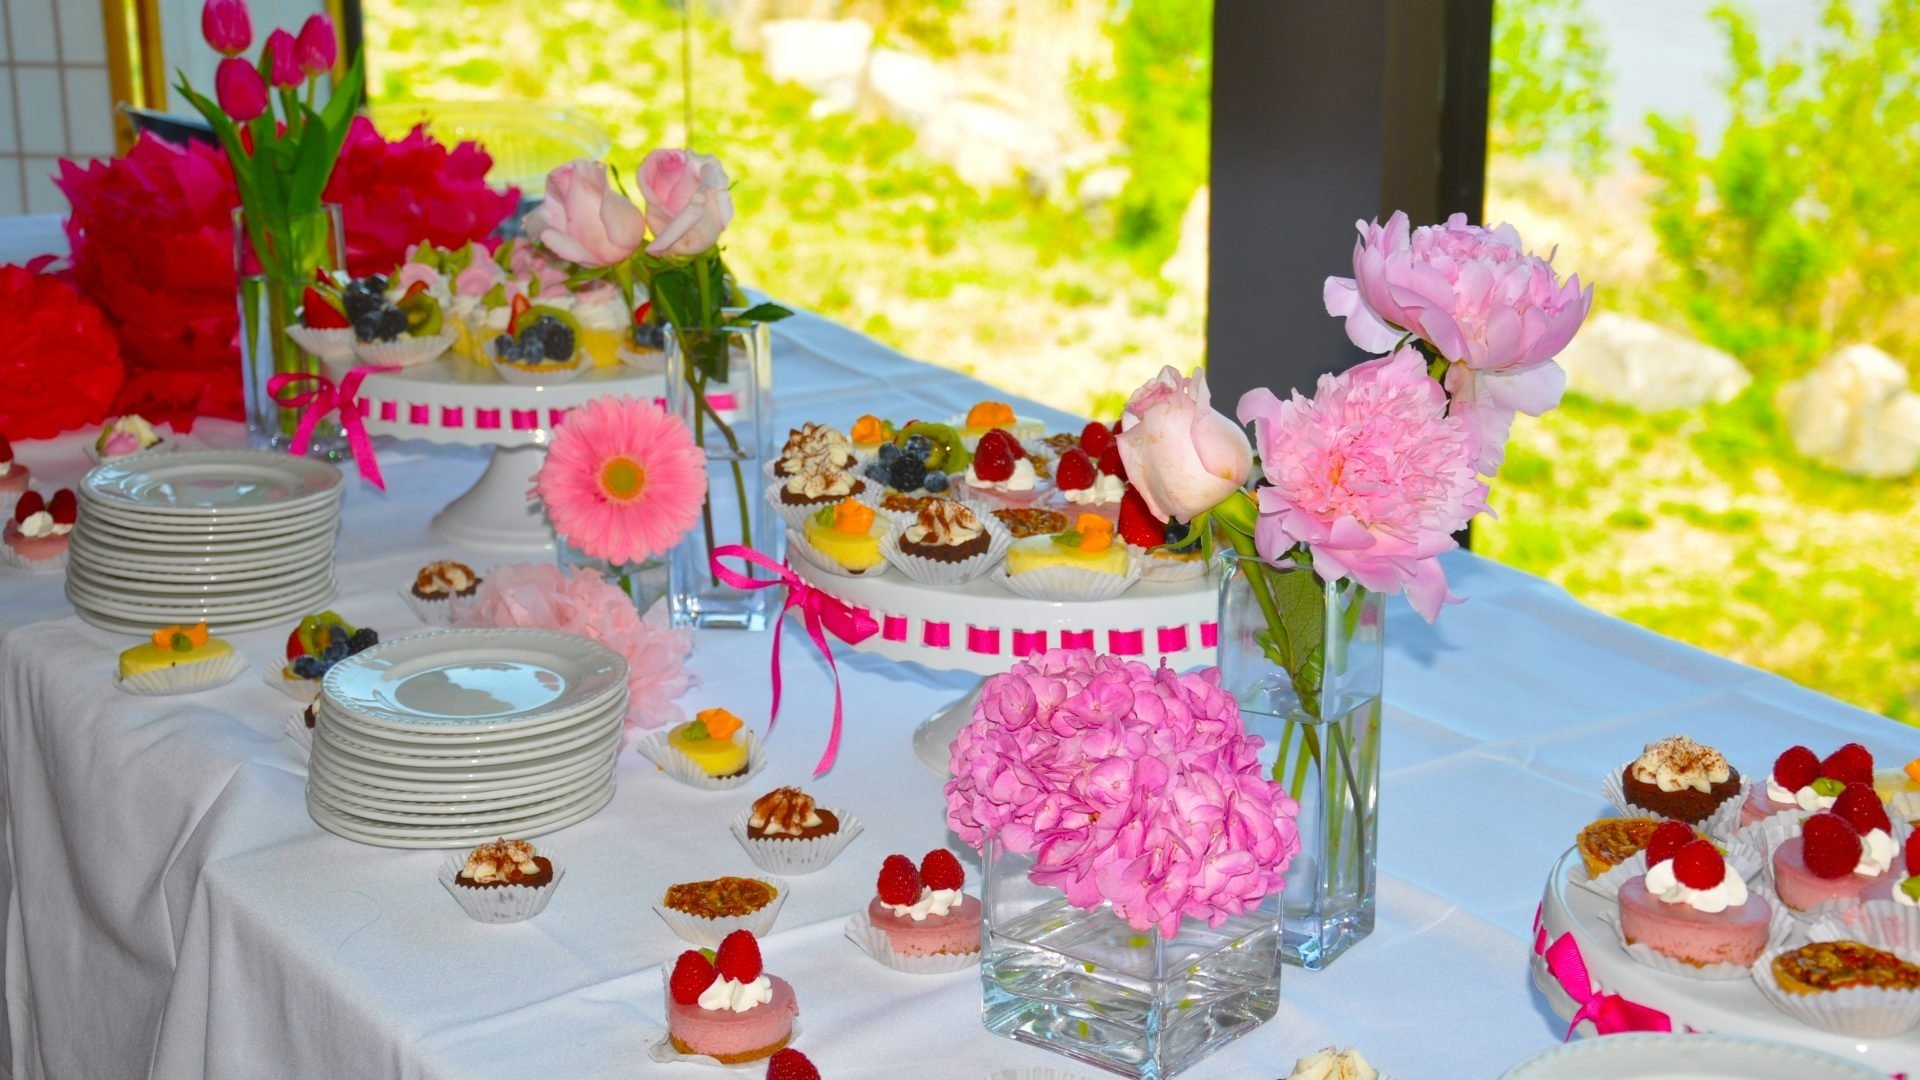 10 Most Popular Baby Shower Table Centerpiece Ideas remarkable baby shower table decoration ideas centerpiece homemade 2021